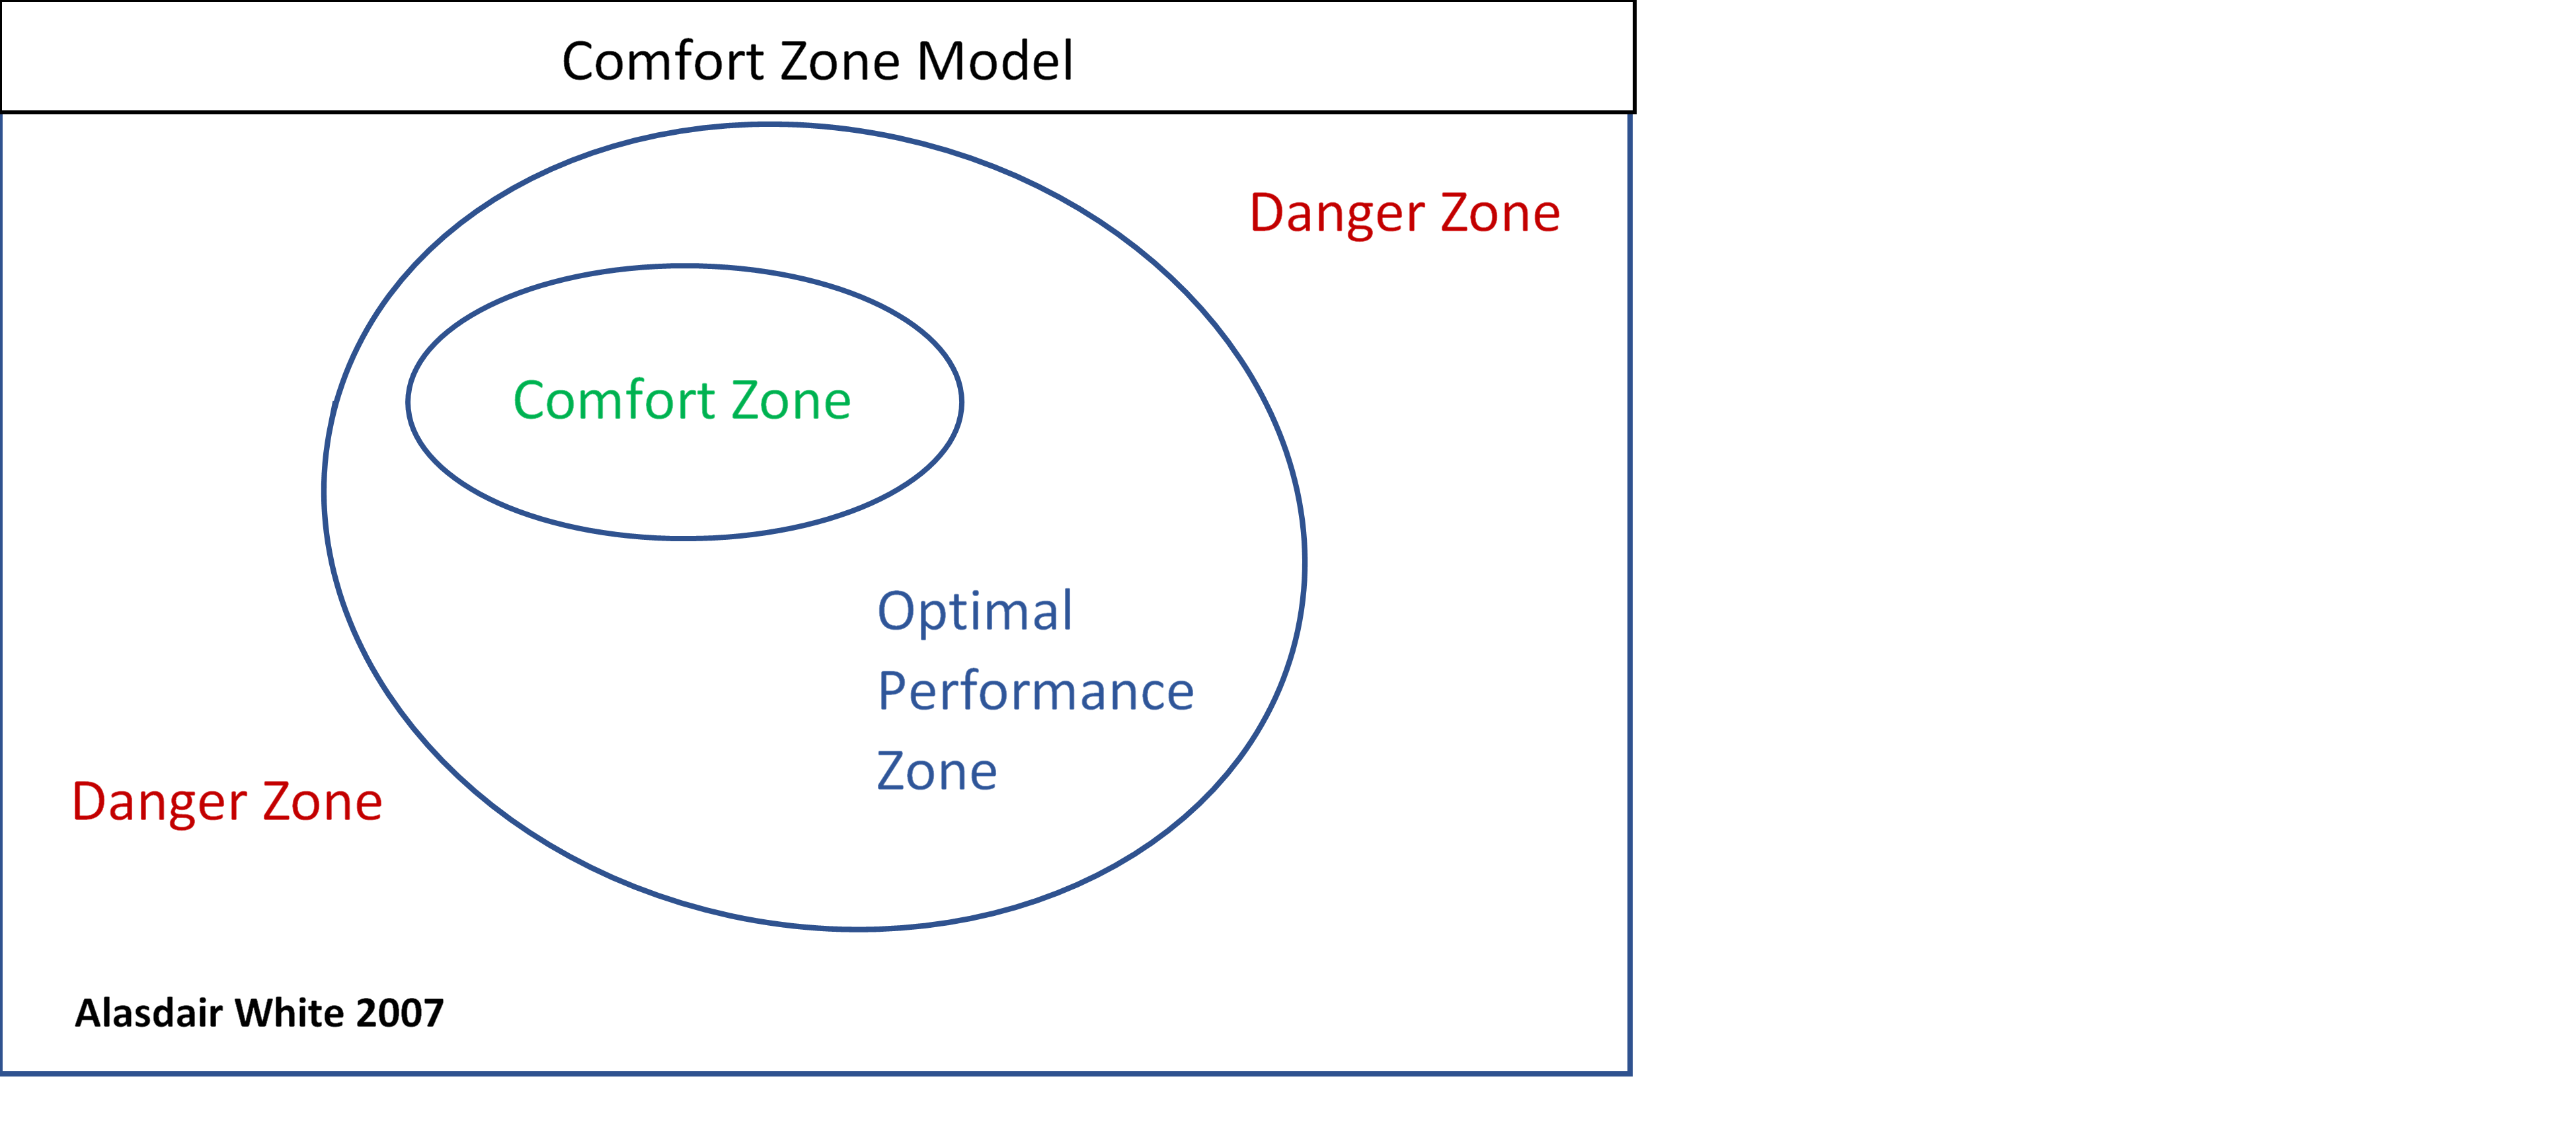 model of comfort zone by white 2007